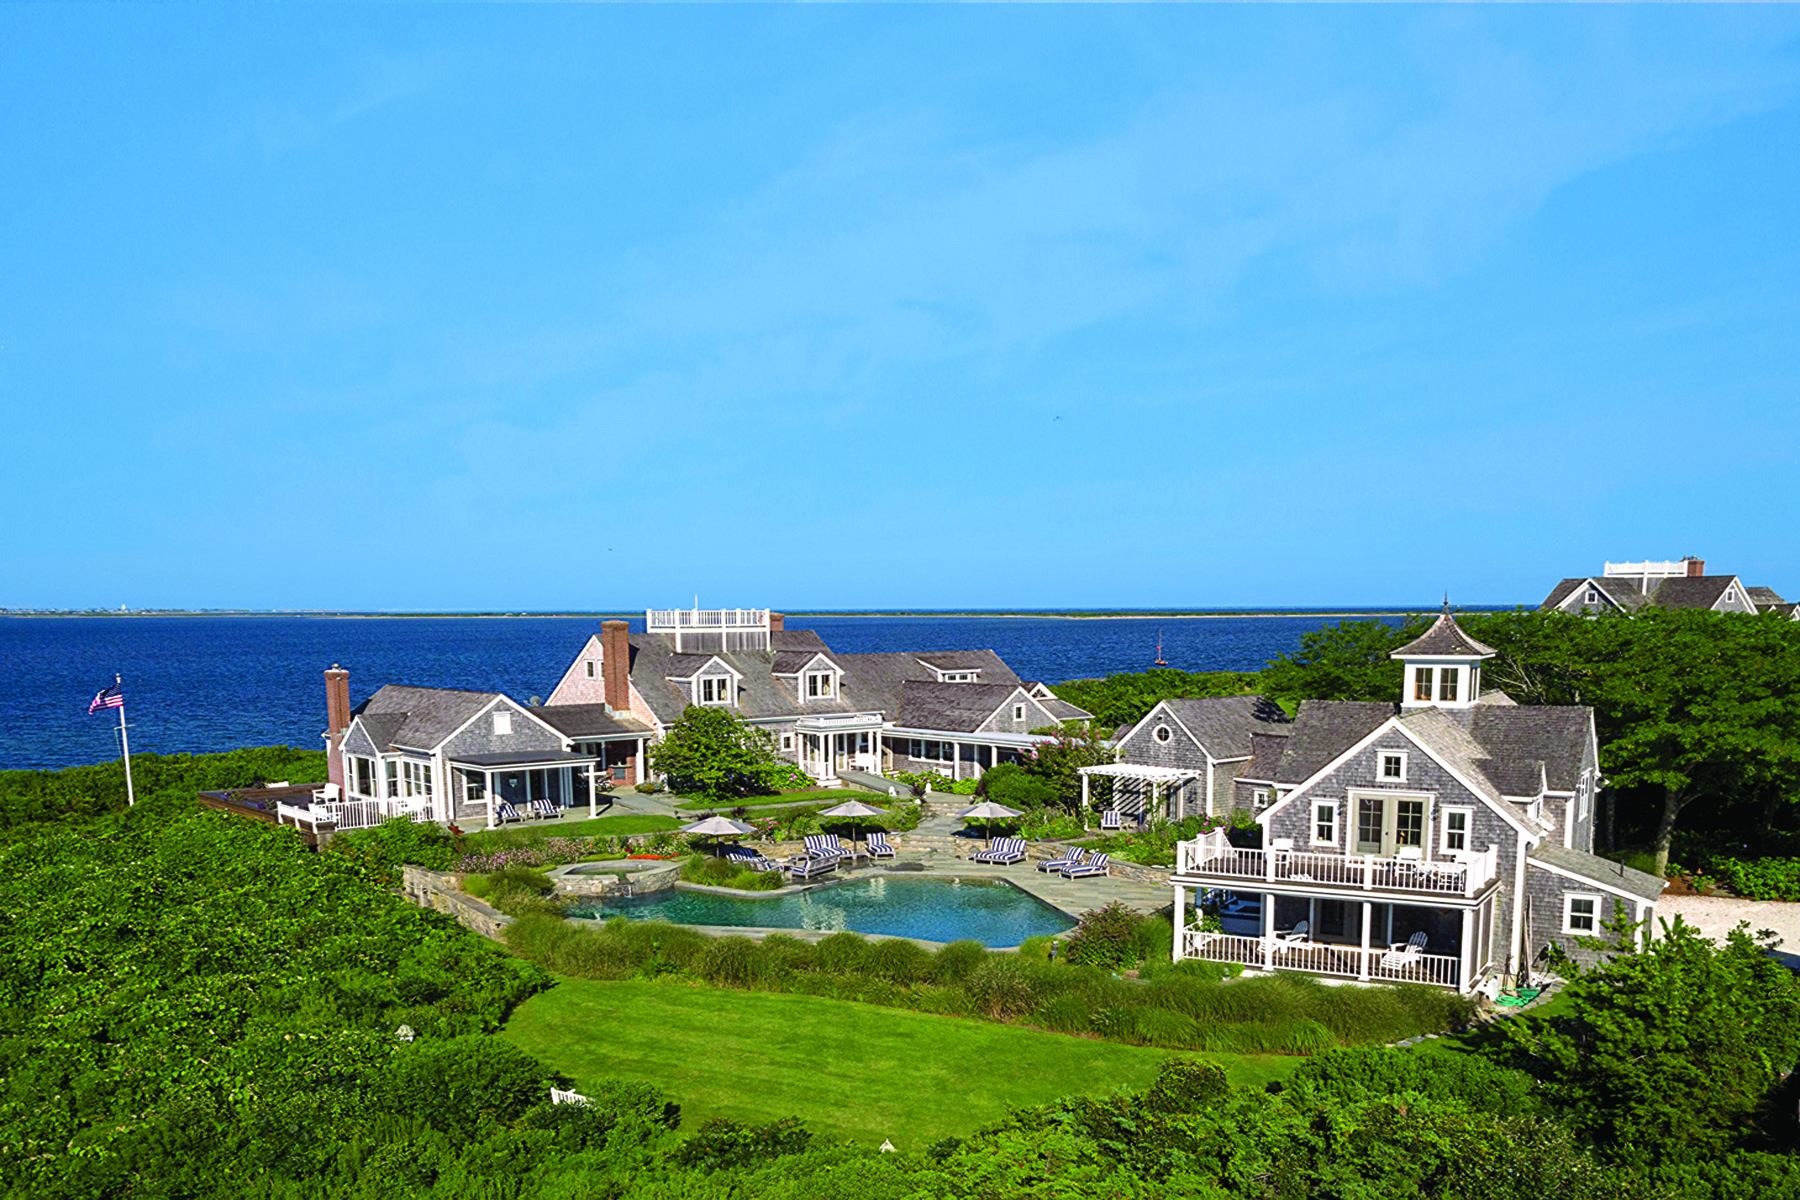 Single Family Home for Sale at Entirely Unique Waterfront Estate 72 Pocomo Road 76 and 78 Pocomo Road Nantucket, Massachusetts 02554 United States